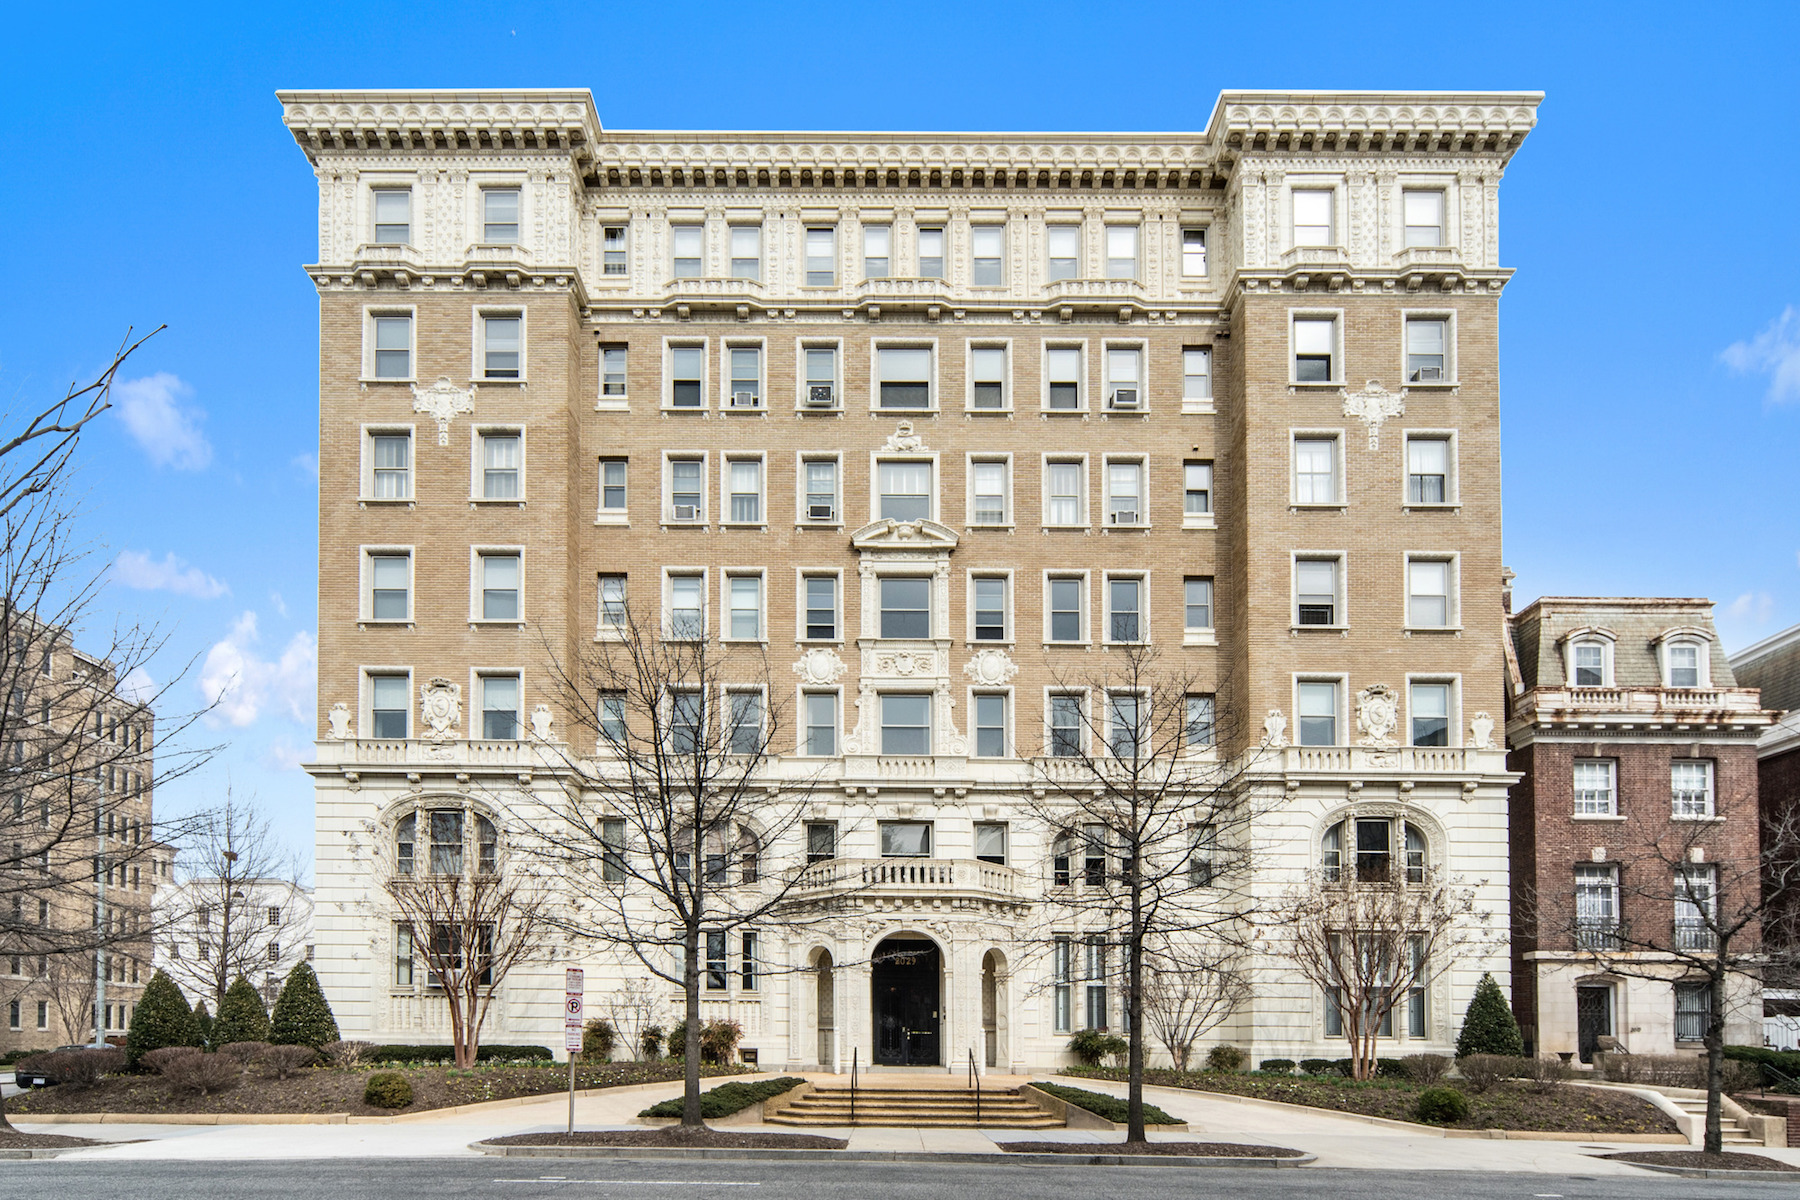 Condominium for Sale at Kalorama 2029 Connecticut Avenue Nw 52 Washington, District Of Columbia 20008 United States